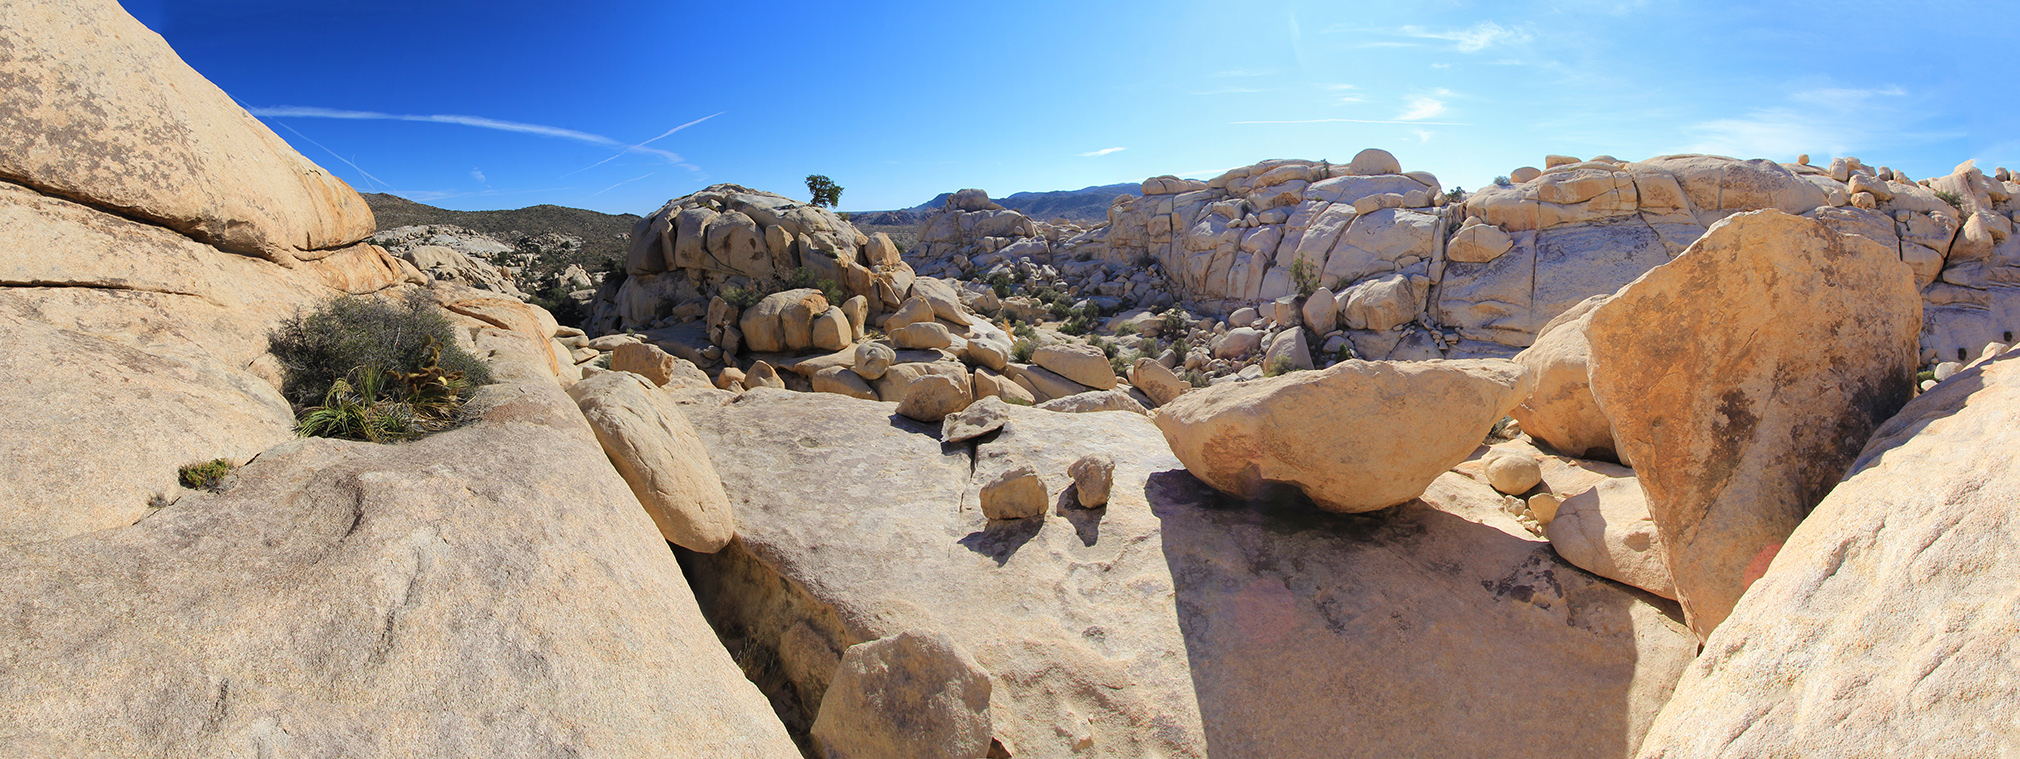 wonderland of rocks joshua tree